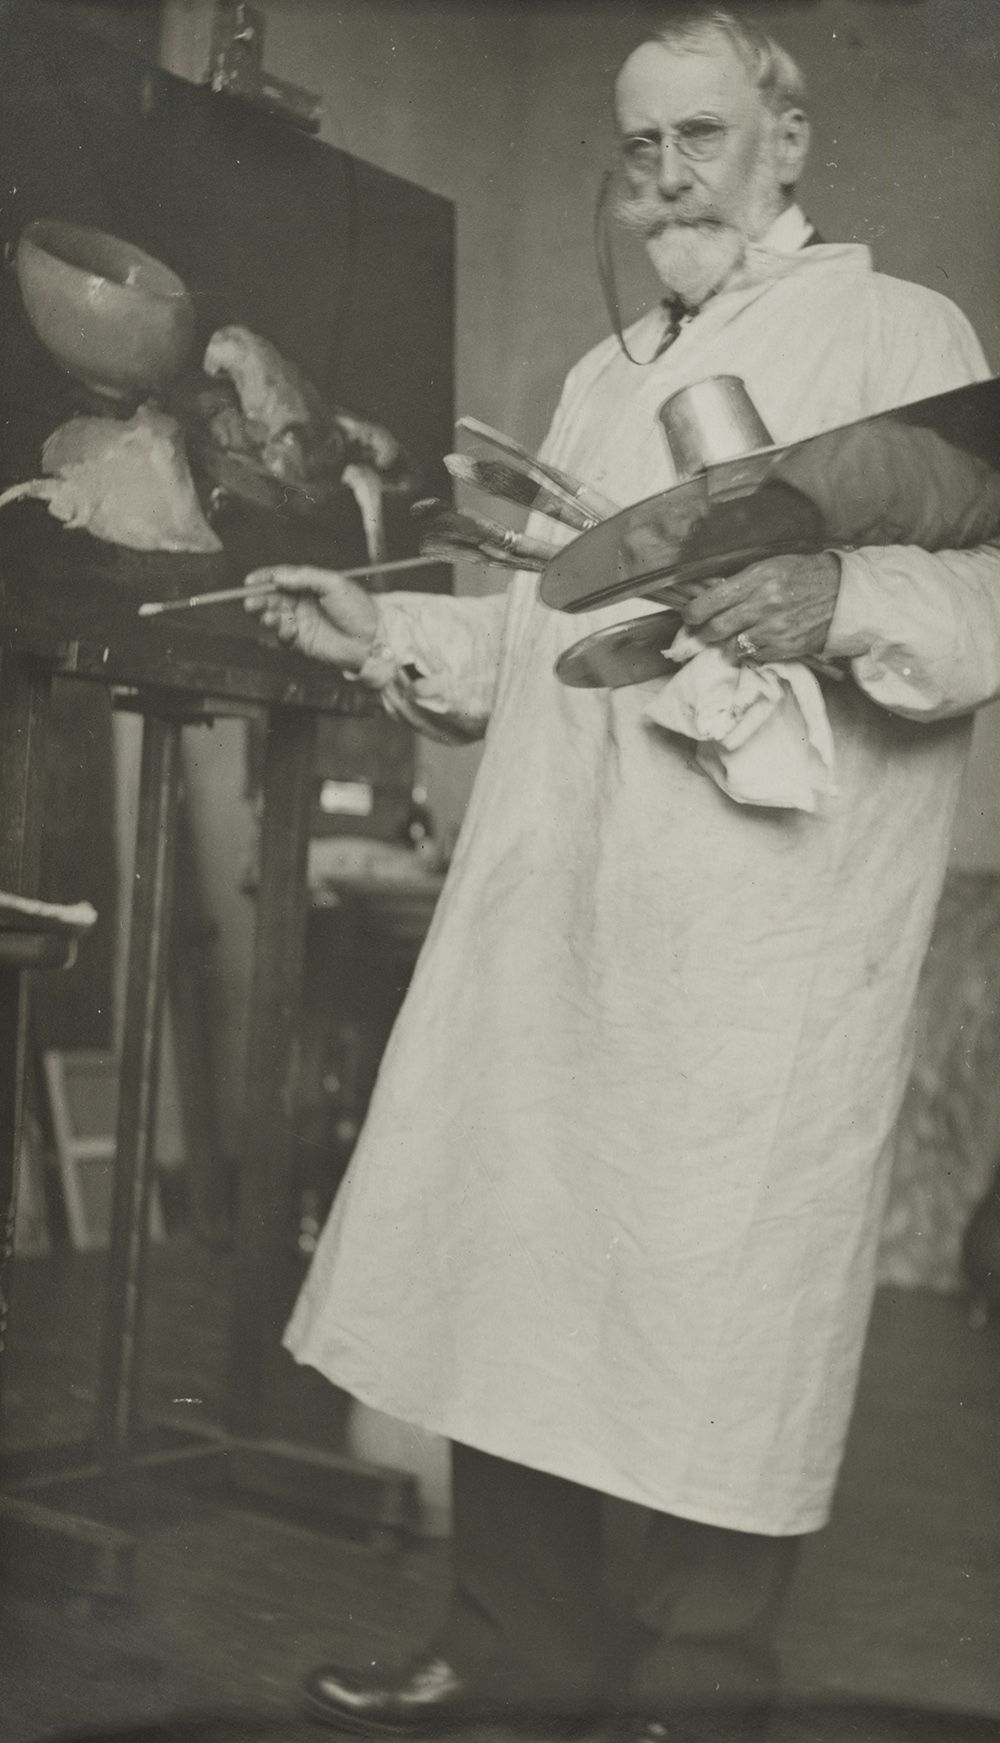 Photograph of William Merritt Chase painting in his studio.